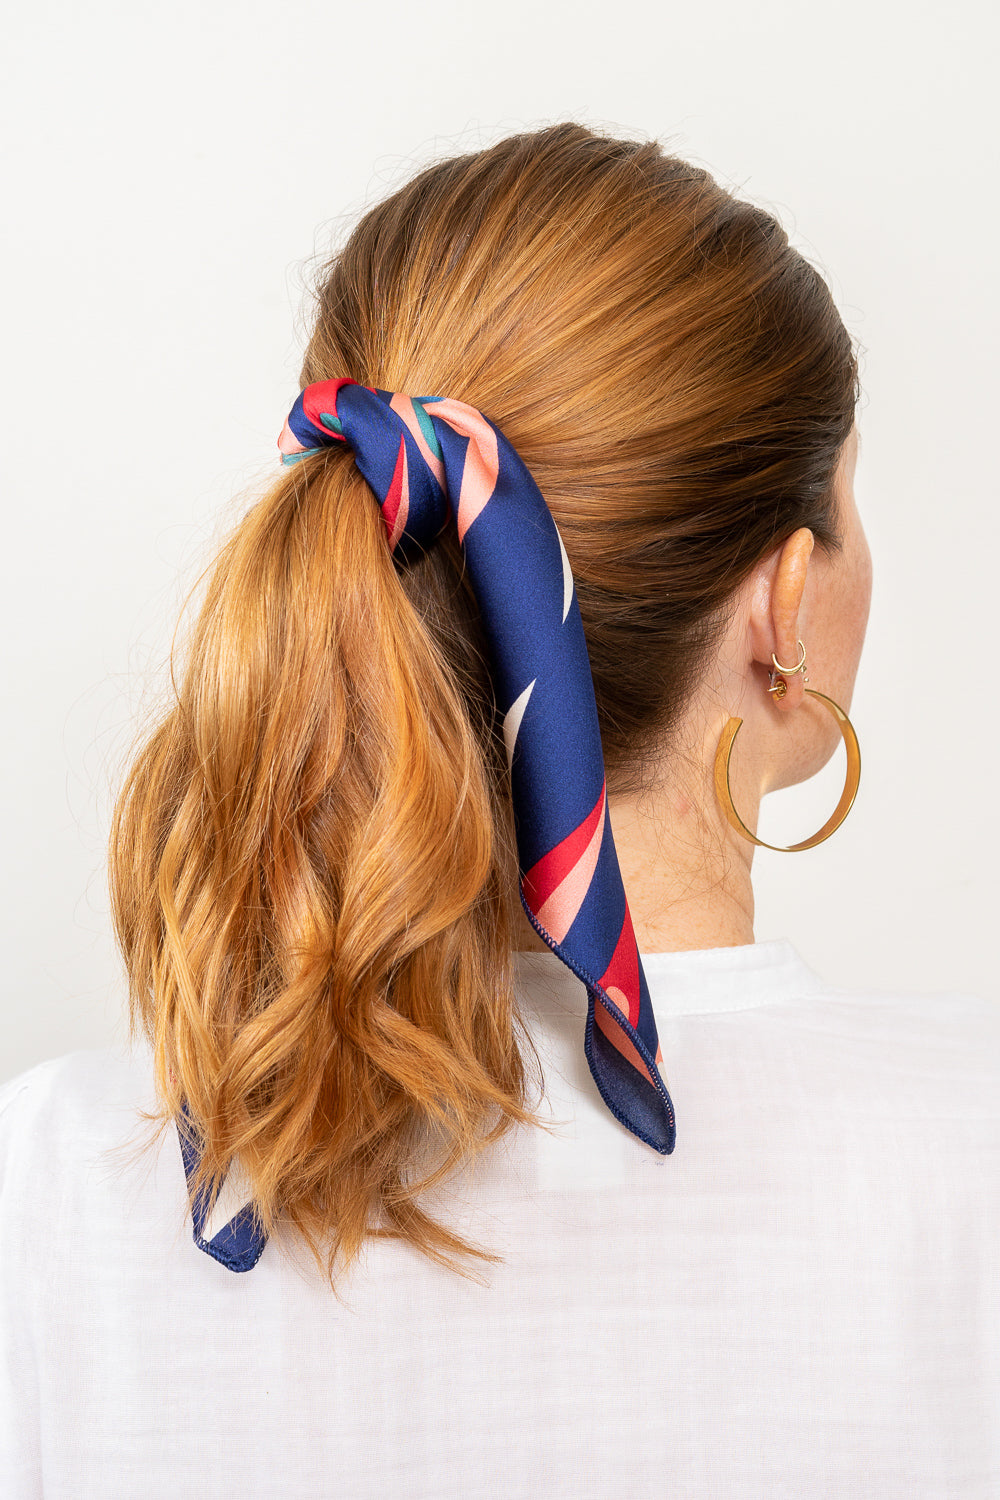 red head with blue and red print scarf tied in hair ponytail hoop earrings Janna Conne